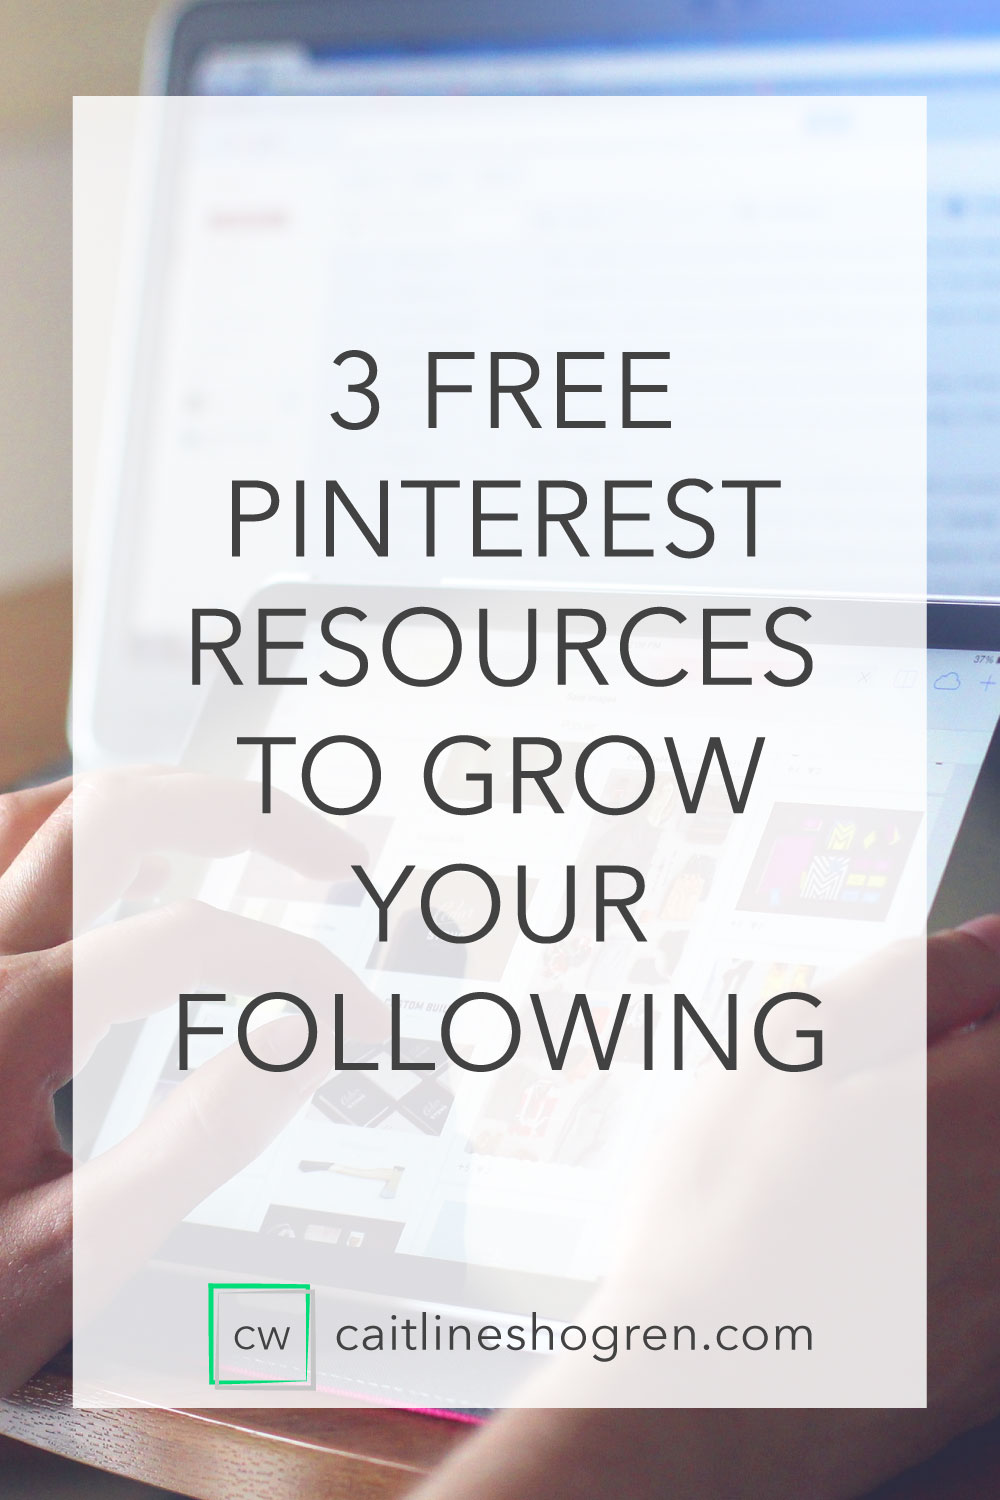 Pinterest-resources3.jpg